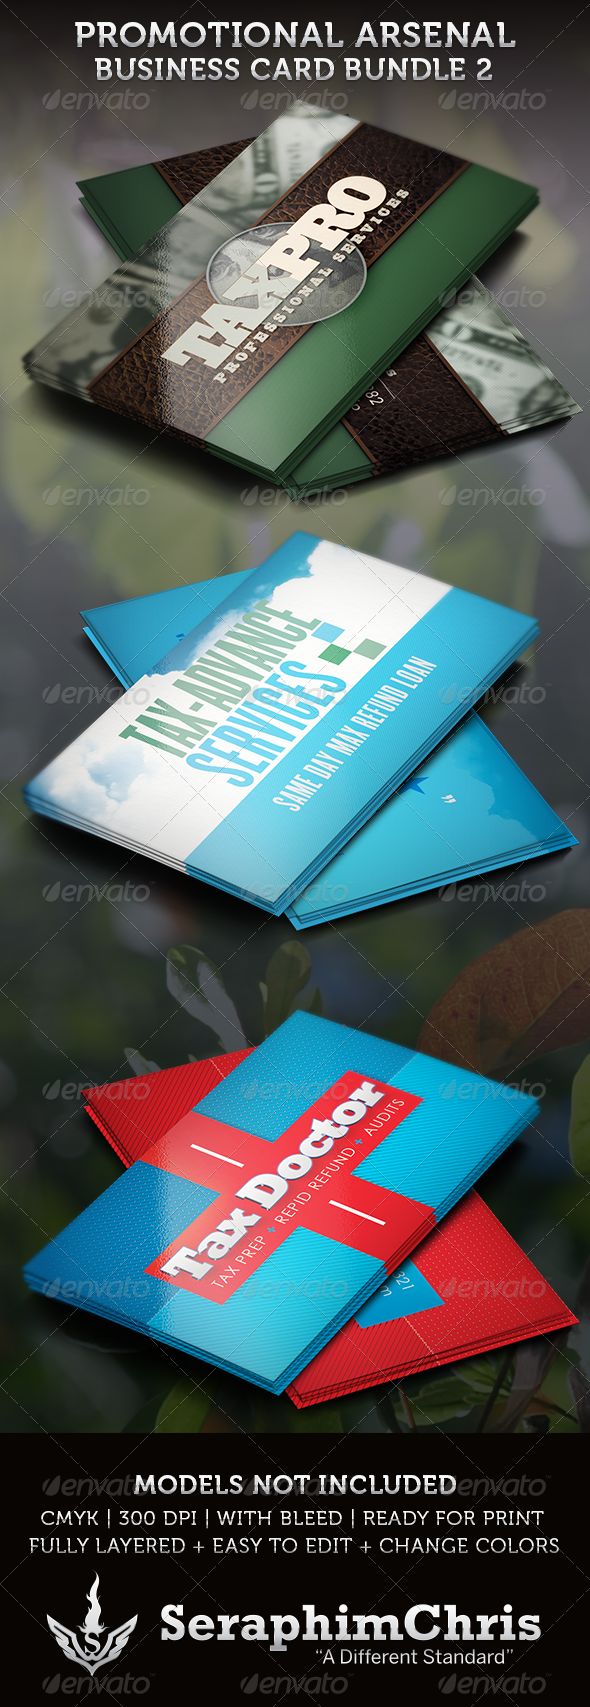 Promotional Arsenal Business Card Bundle 2 - Corporate Business Cards